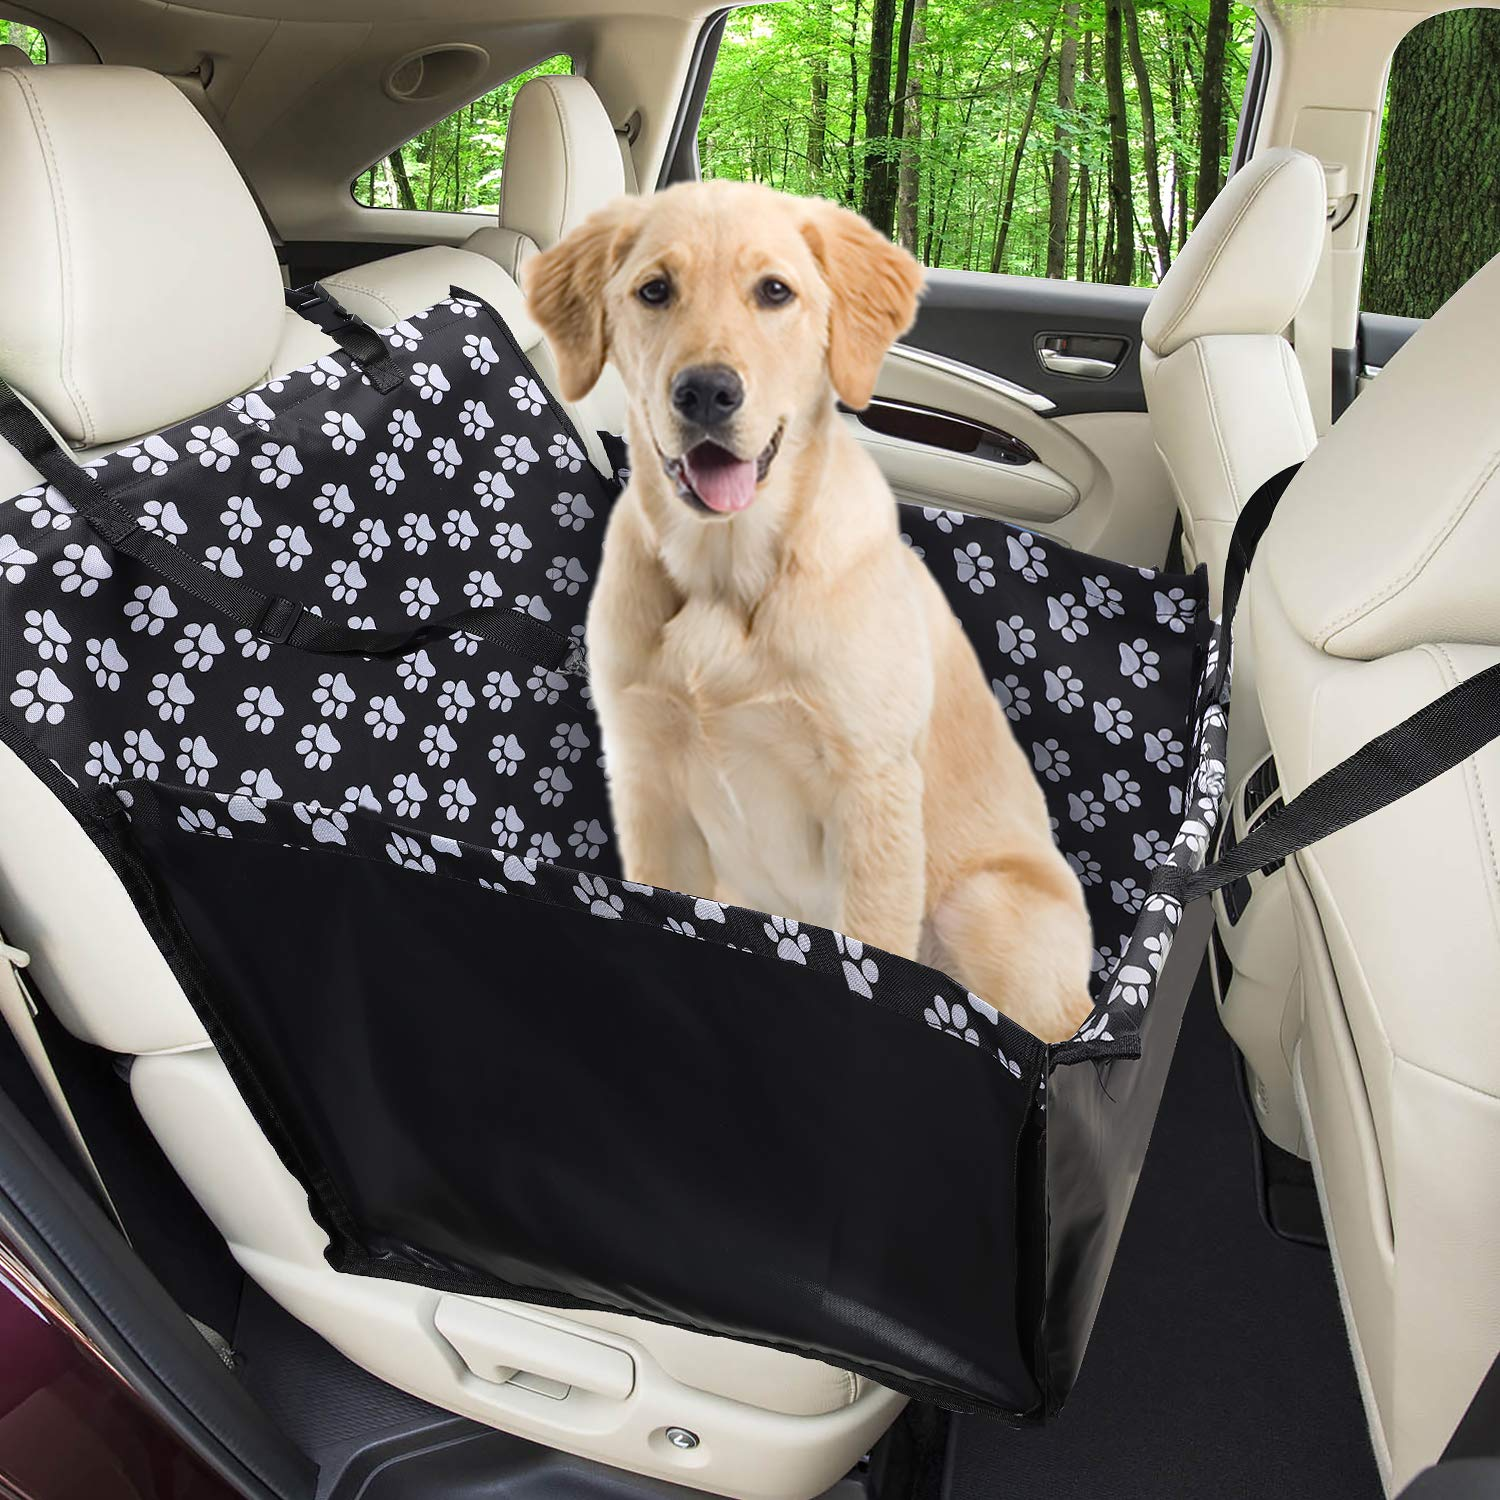 Pet Car Seat Covers >> Funpet Car Booster For Dogs Waterproof Dog Seat Covers Pet Car Blanket With Dog Seat Belt Travel Seat Protector Dog Basket For Back Seat Front Seat